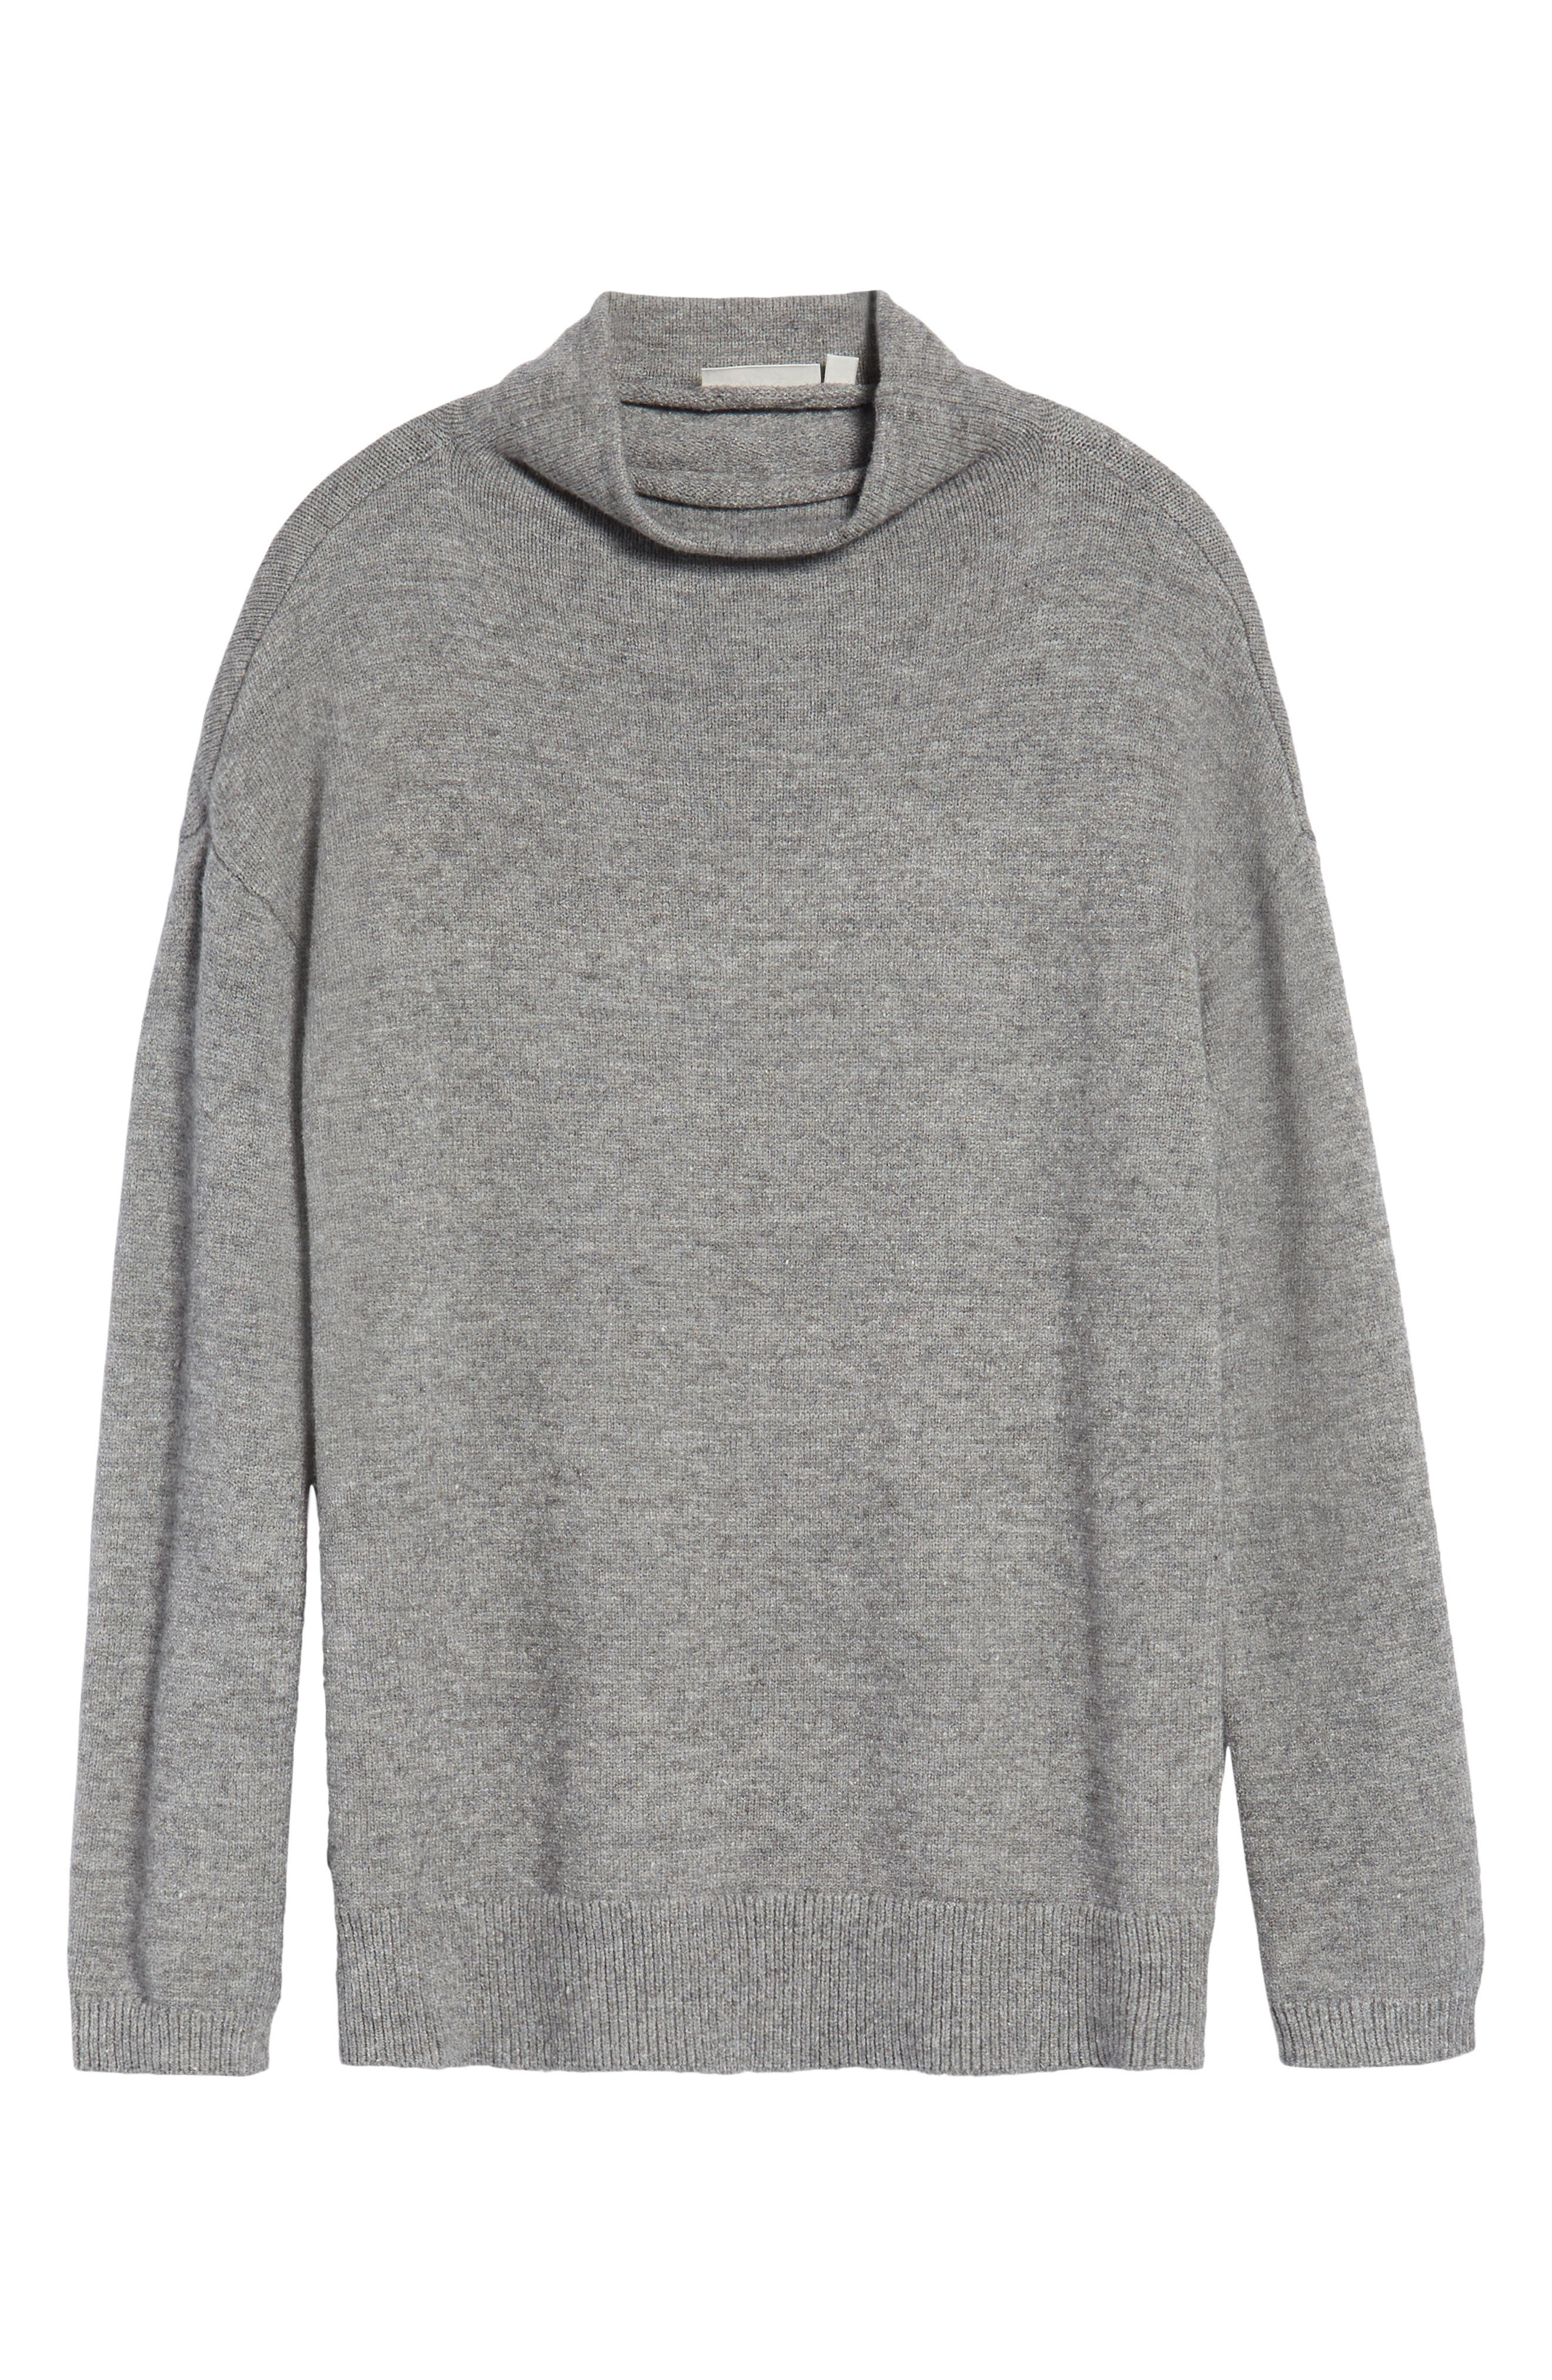 RD Style Funnel Neck Sweater,                             Alternate thumbnail 6, color,                             Grey